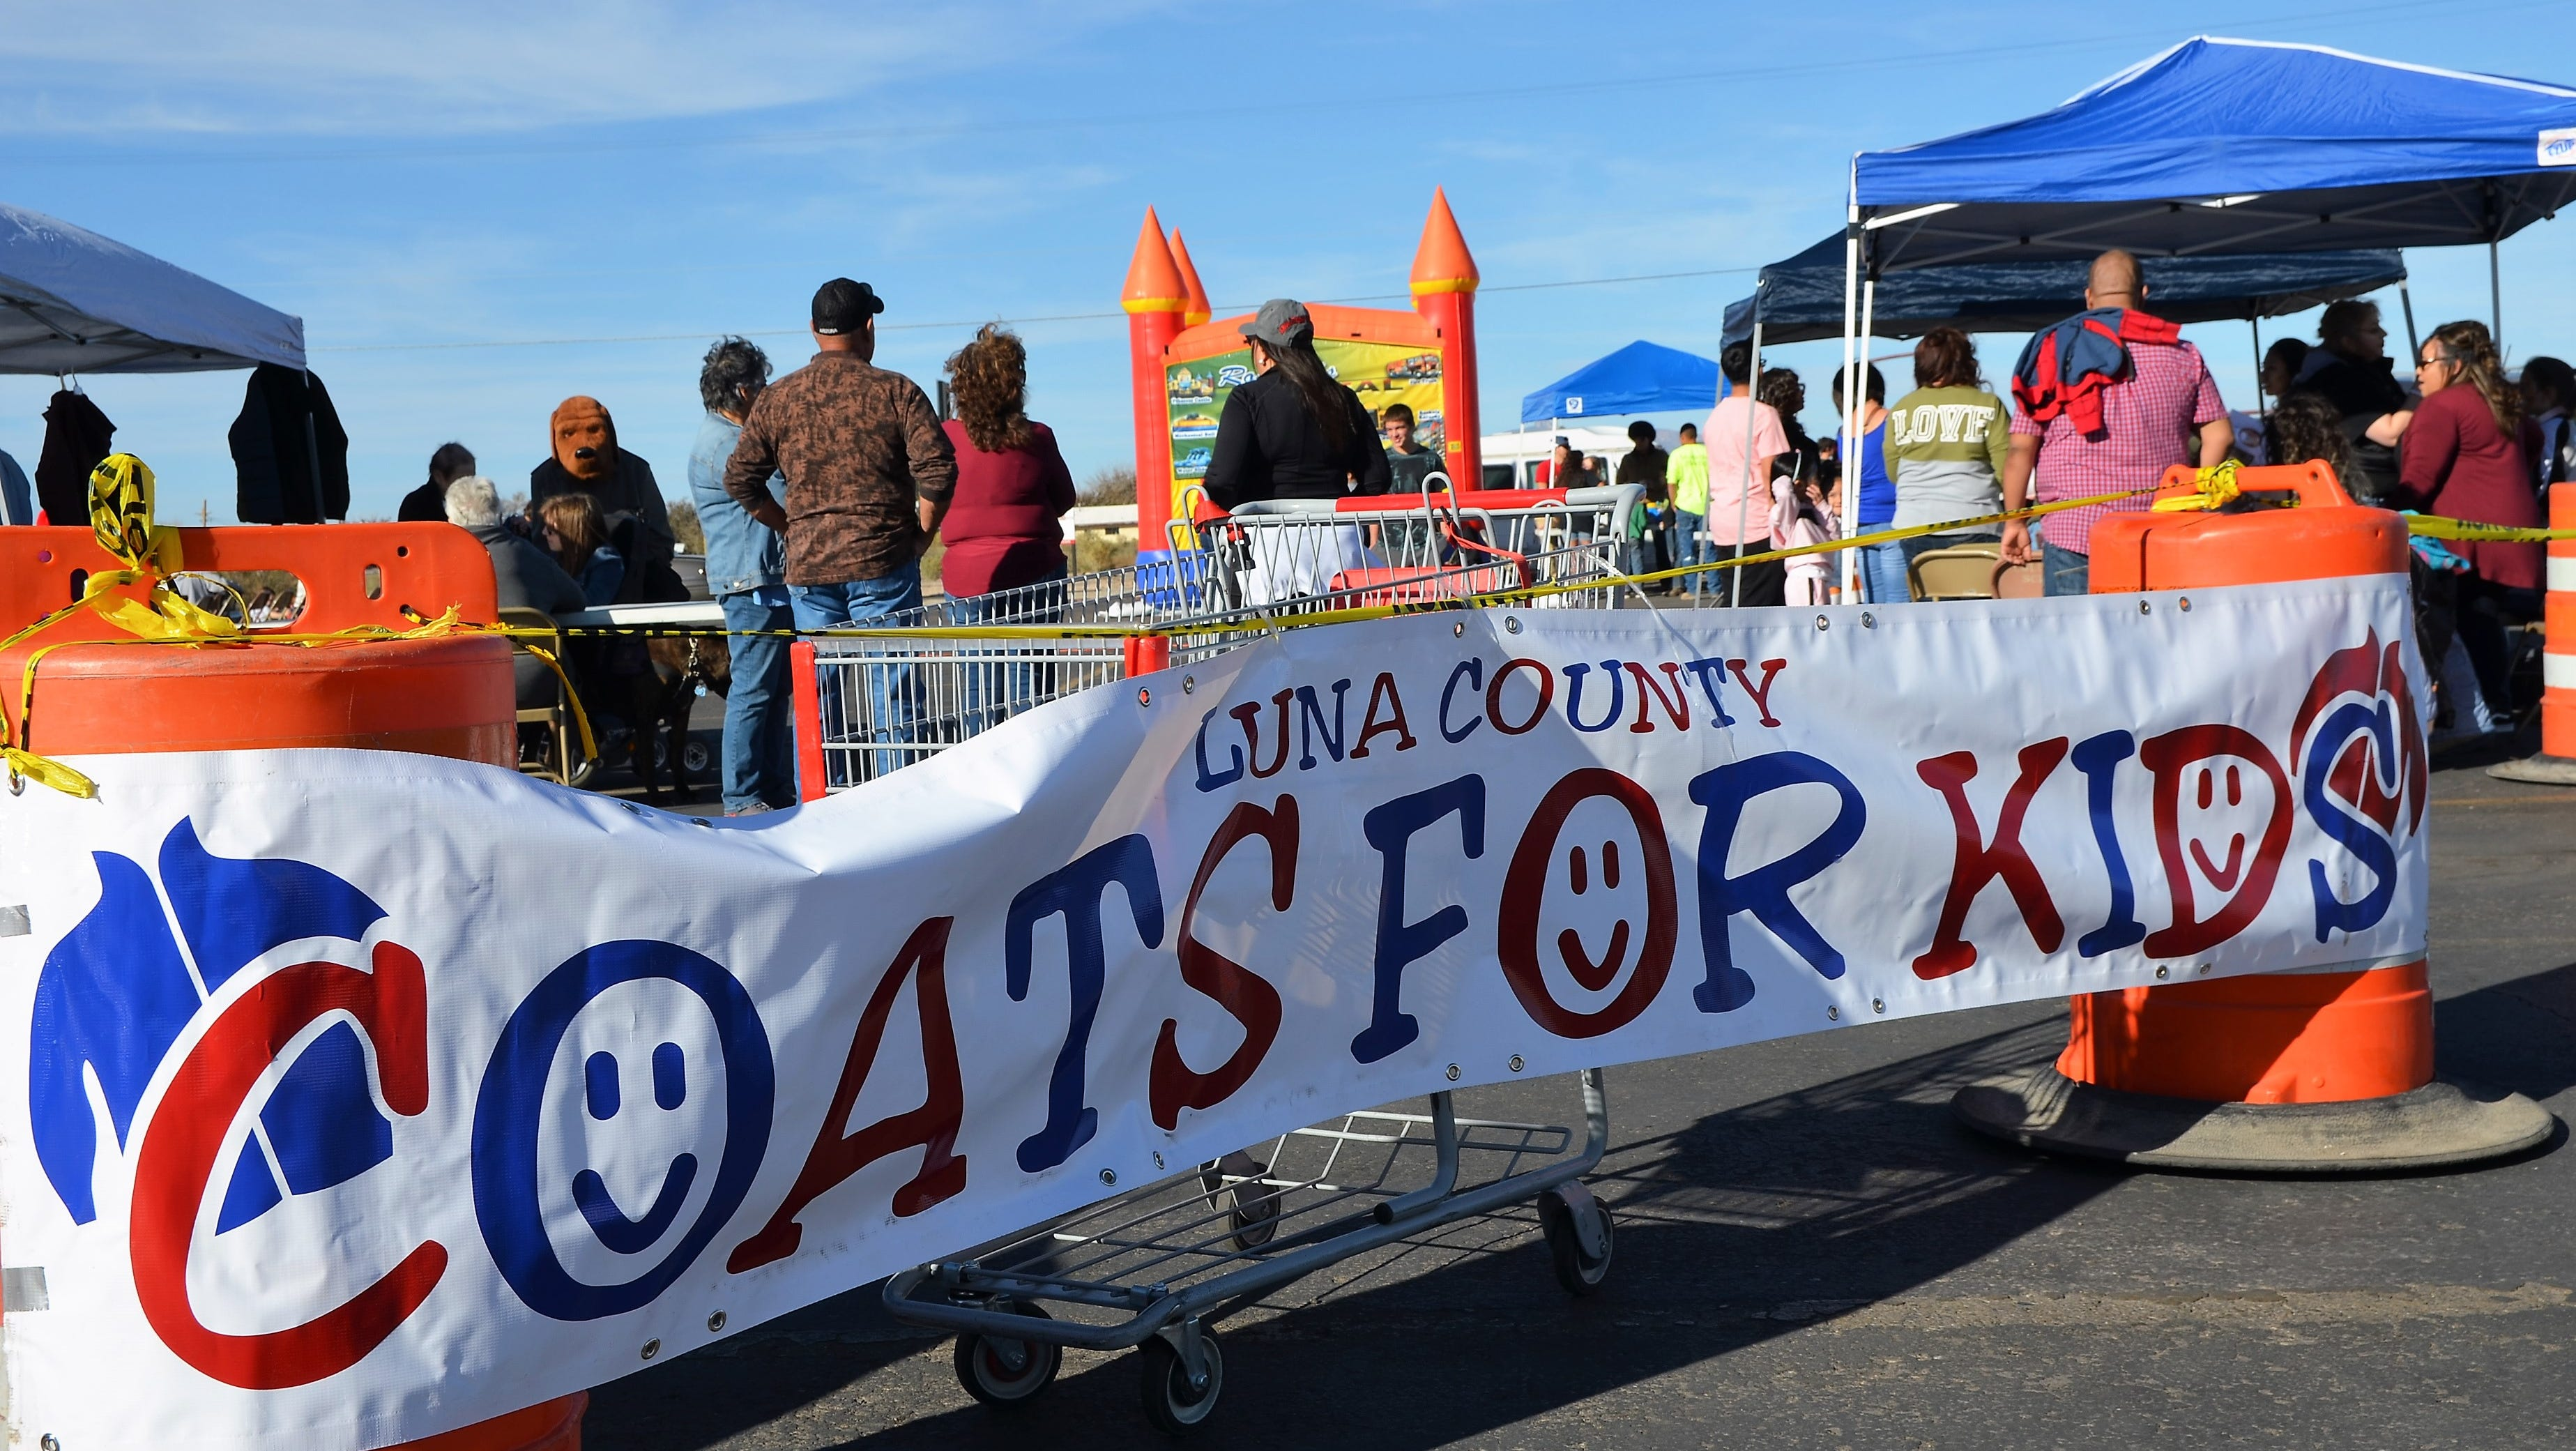 Luna County Coats for Kids banner separates event from Peppers Supermarket parking lot.